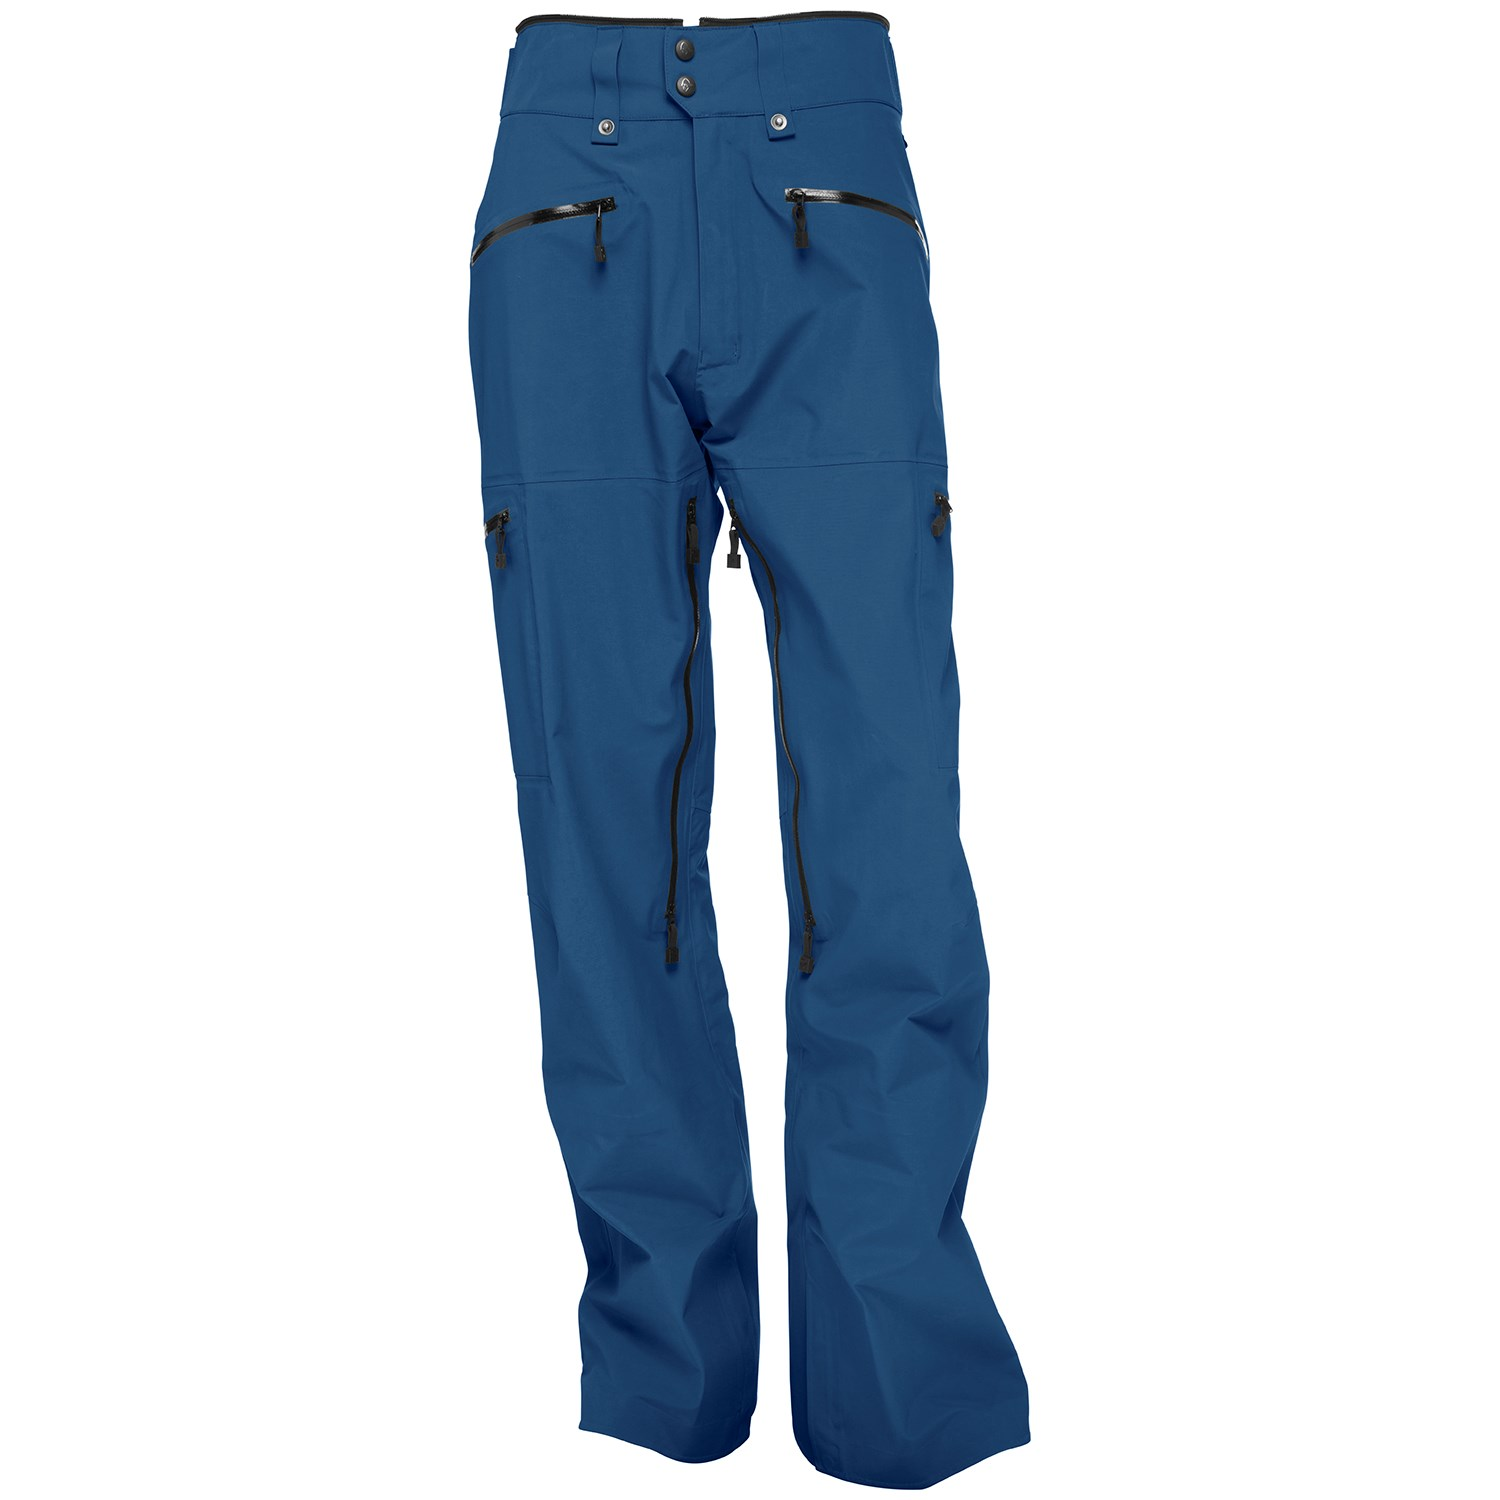 snowboard pants rh evo com Buying Pants in Walmart snowboard pants buying guide